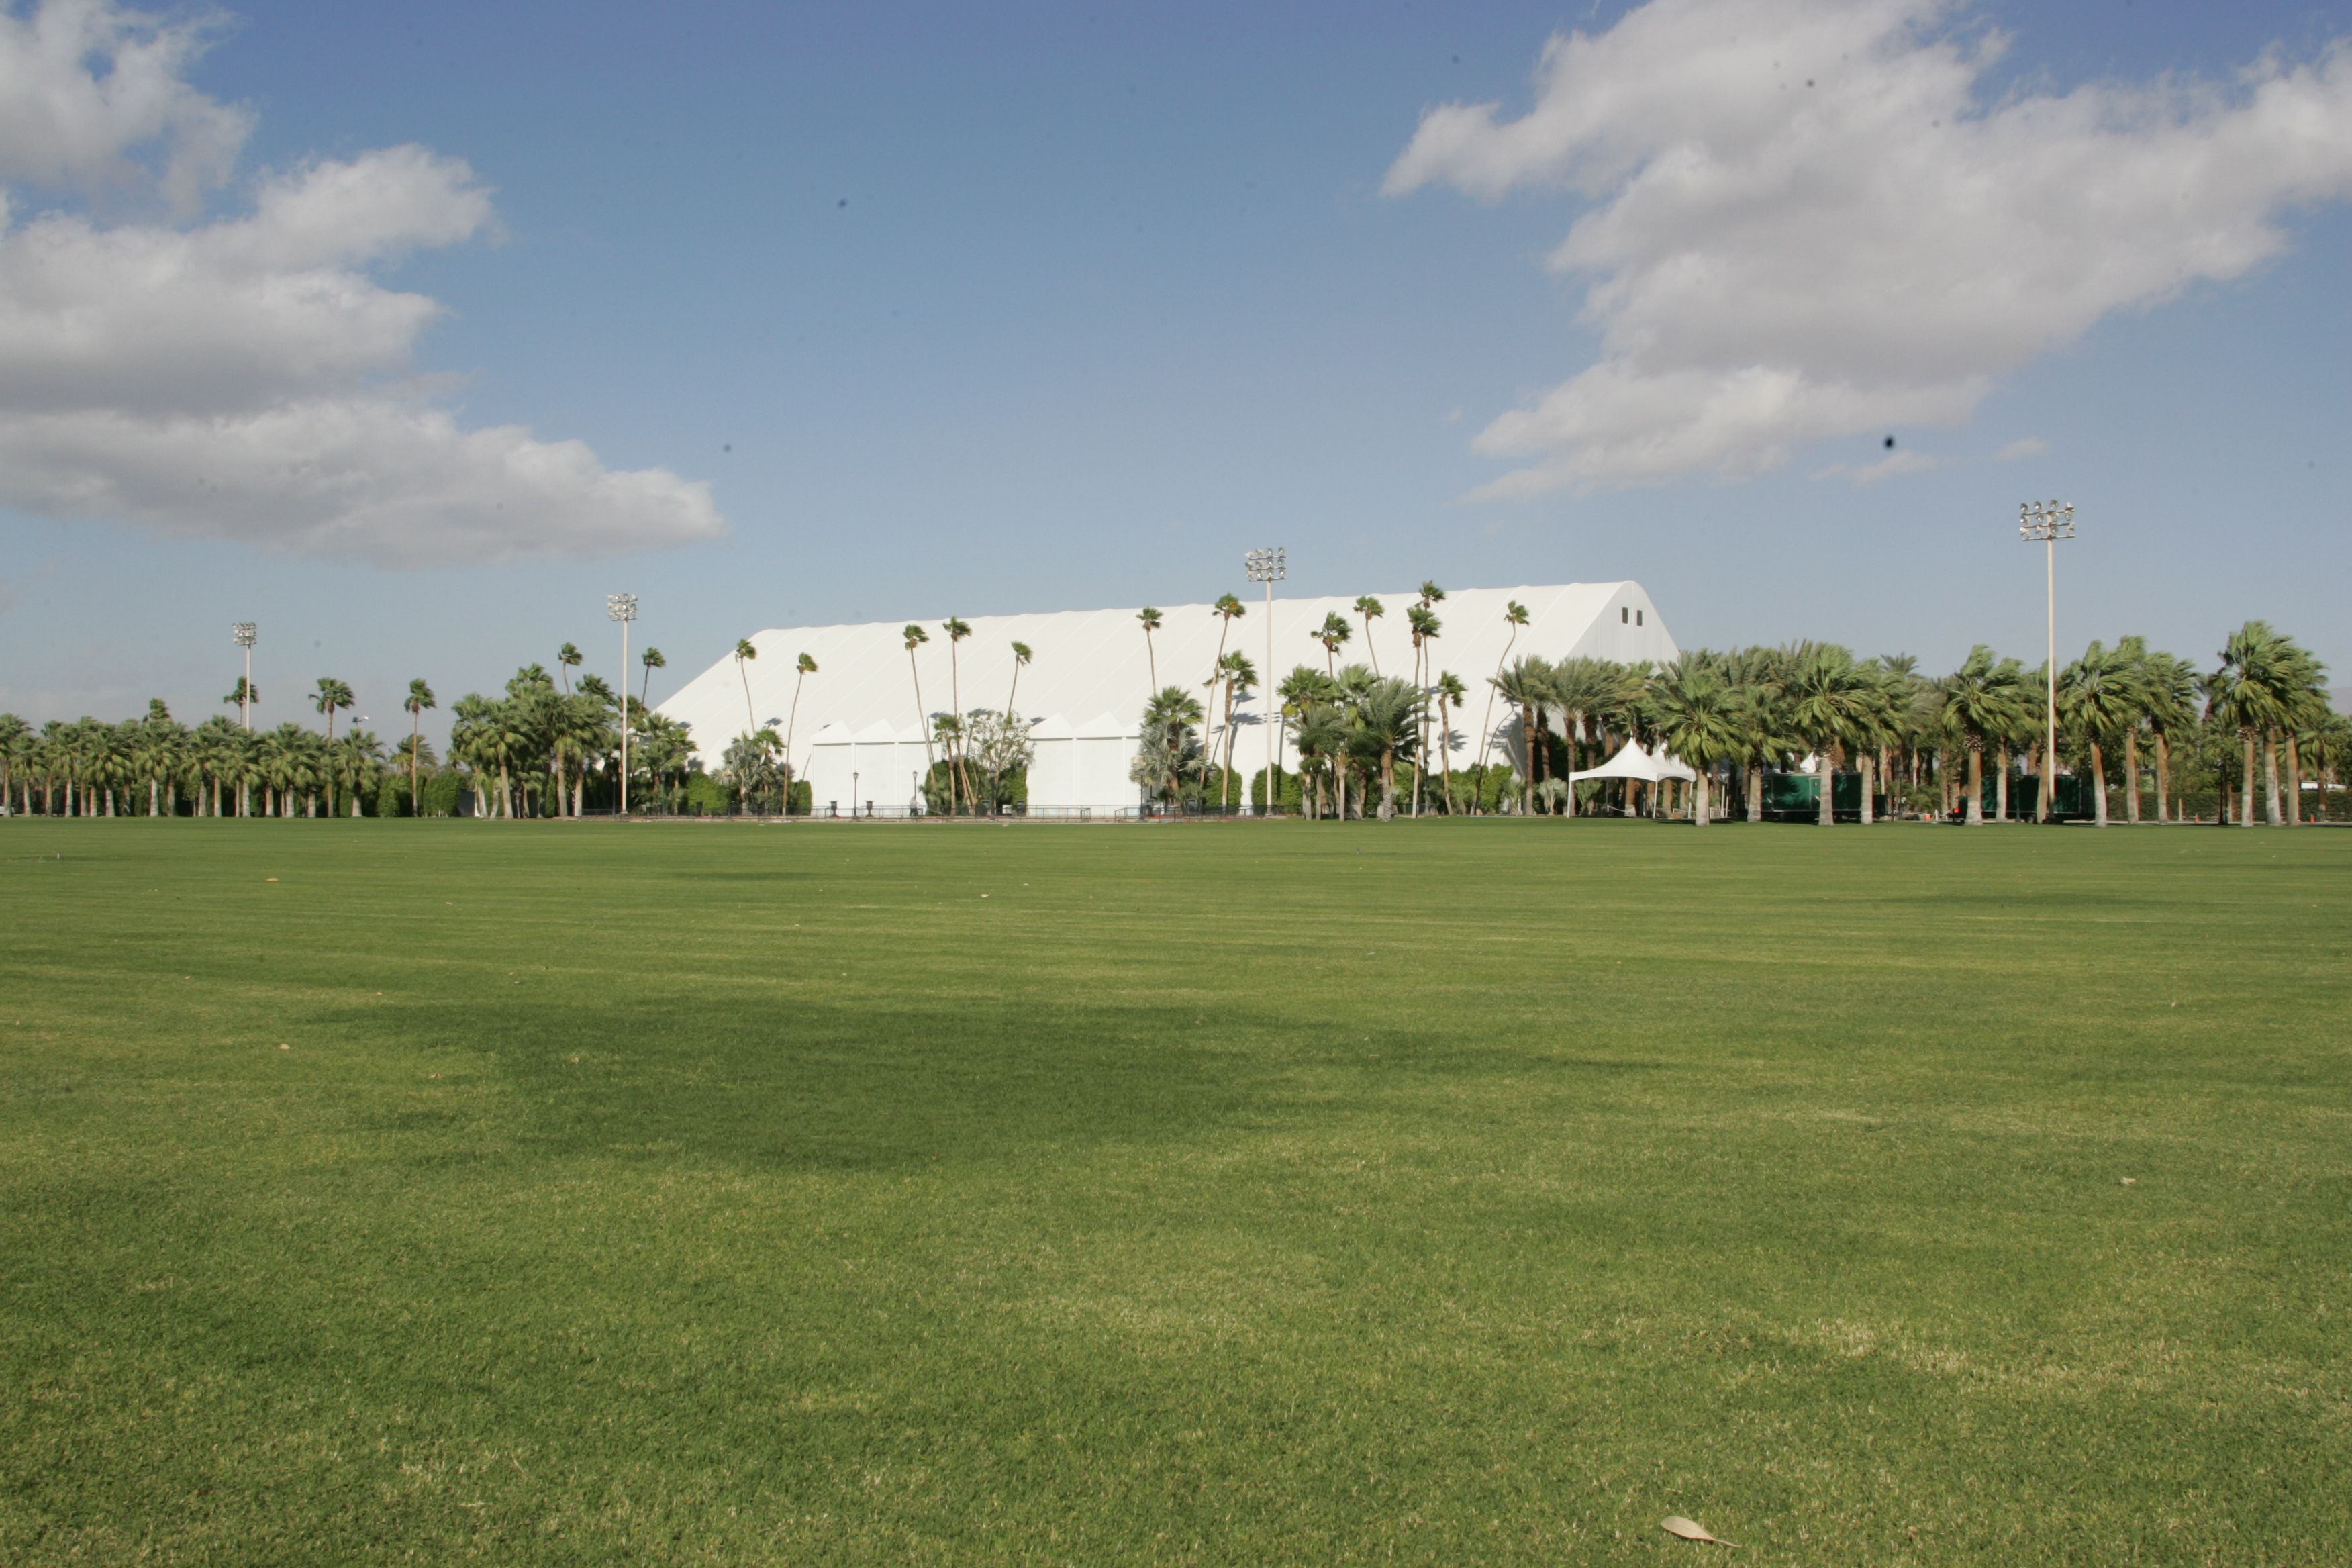 The Forum venue showing building in the distance and polo field in the foreground.